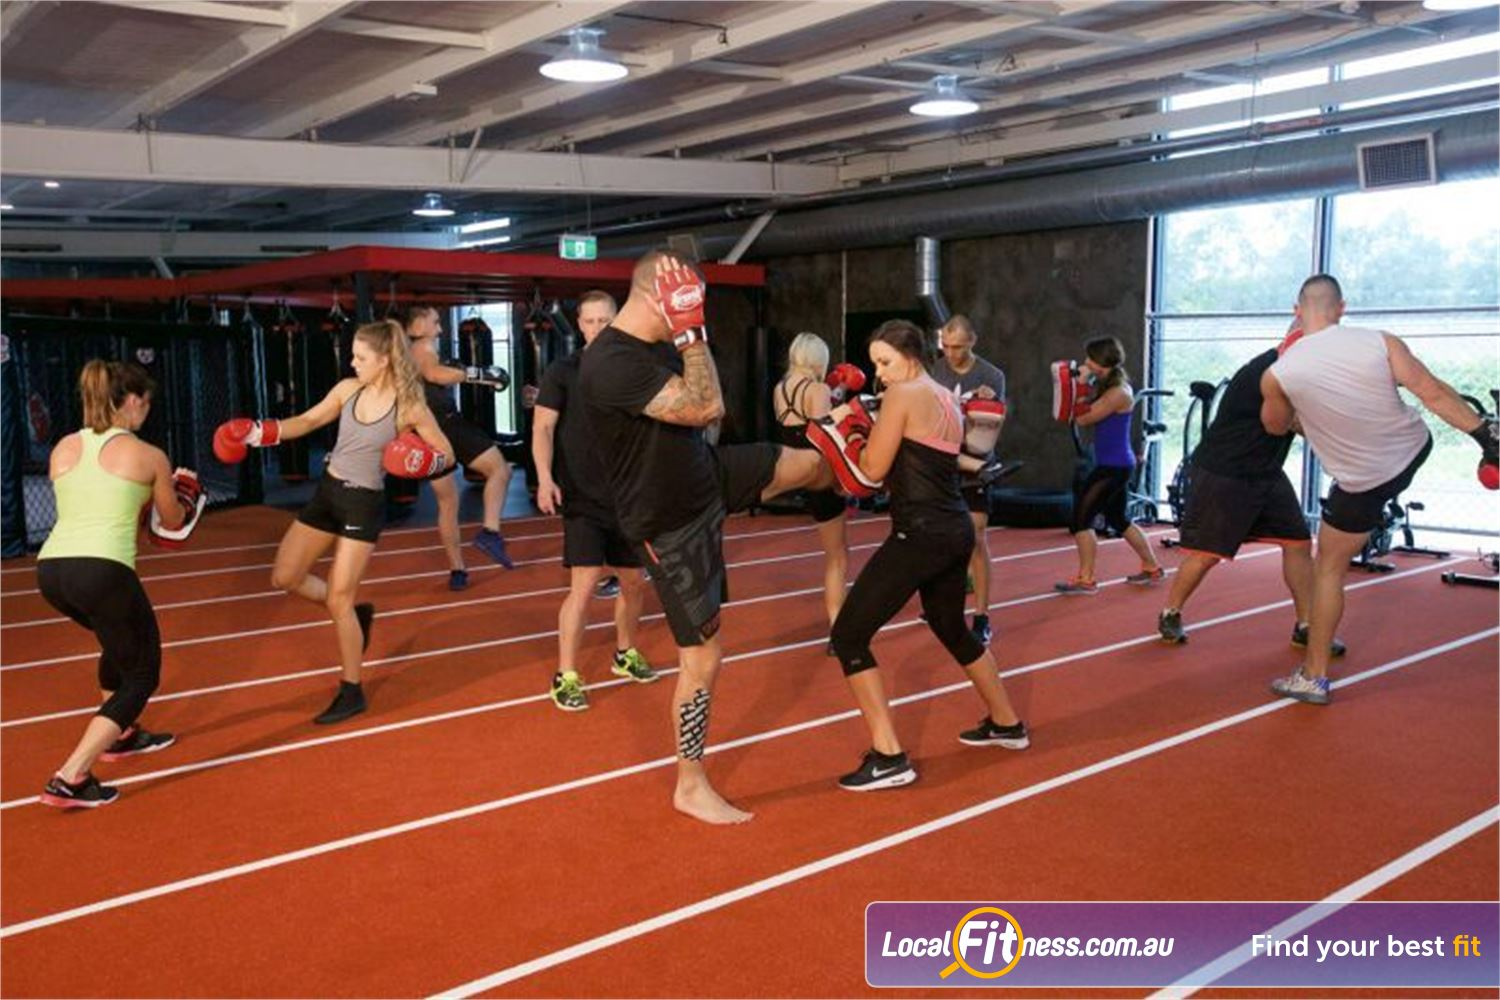 Goodlife Health Clubs Springwood Springwood Arena Fitness MMA - classes inspired by MMA and Boxing.